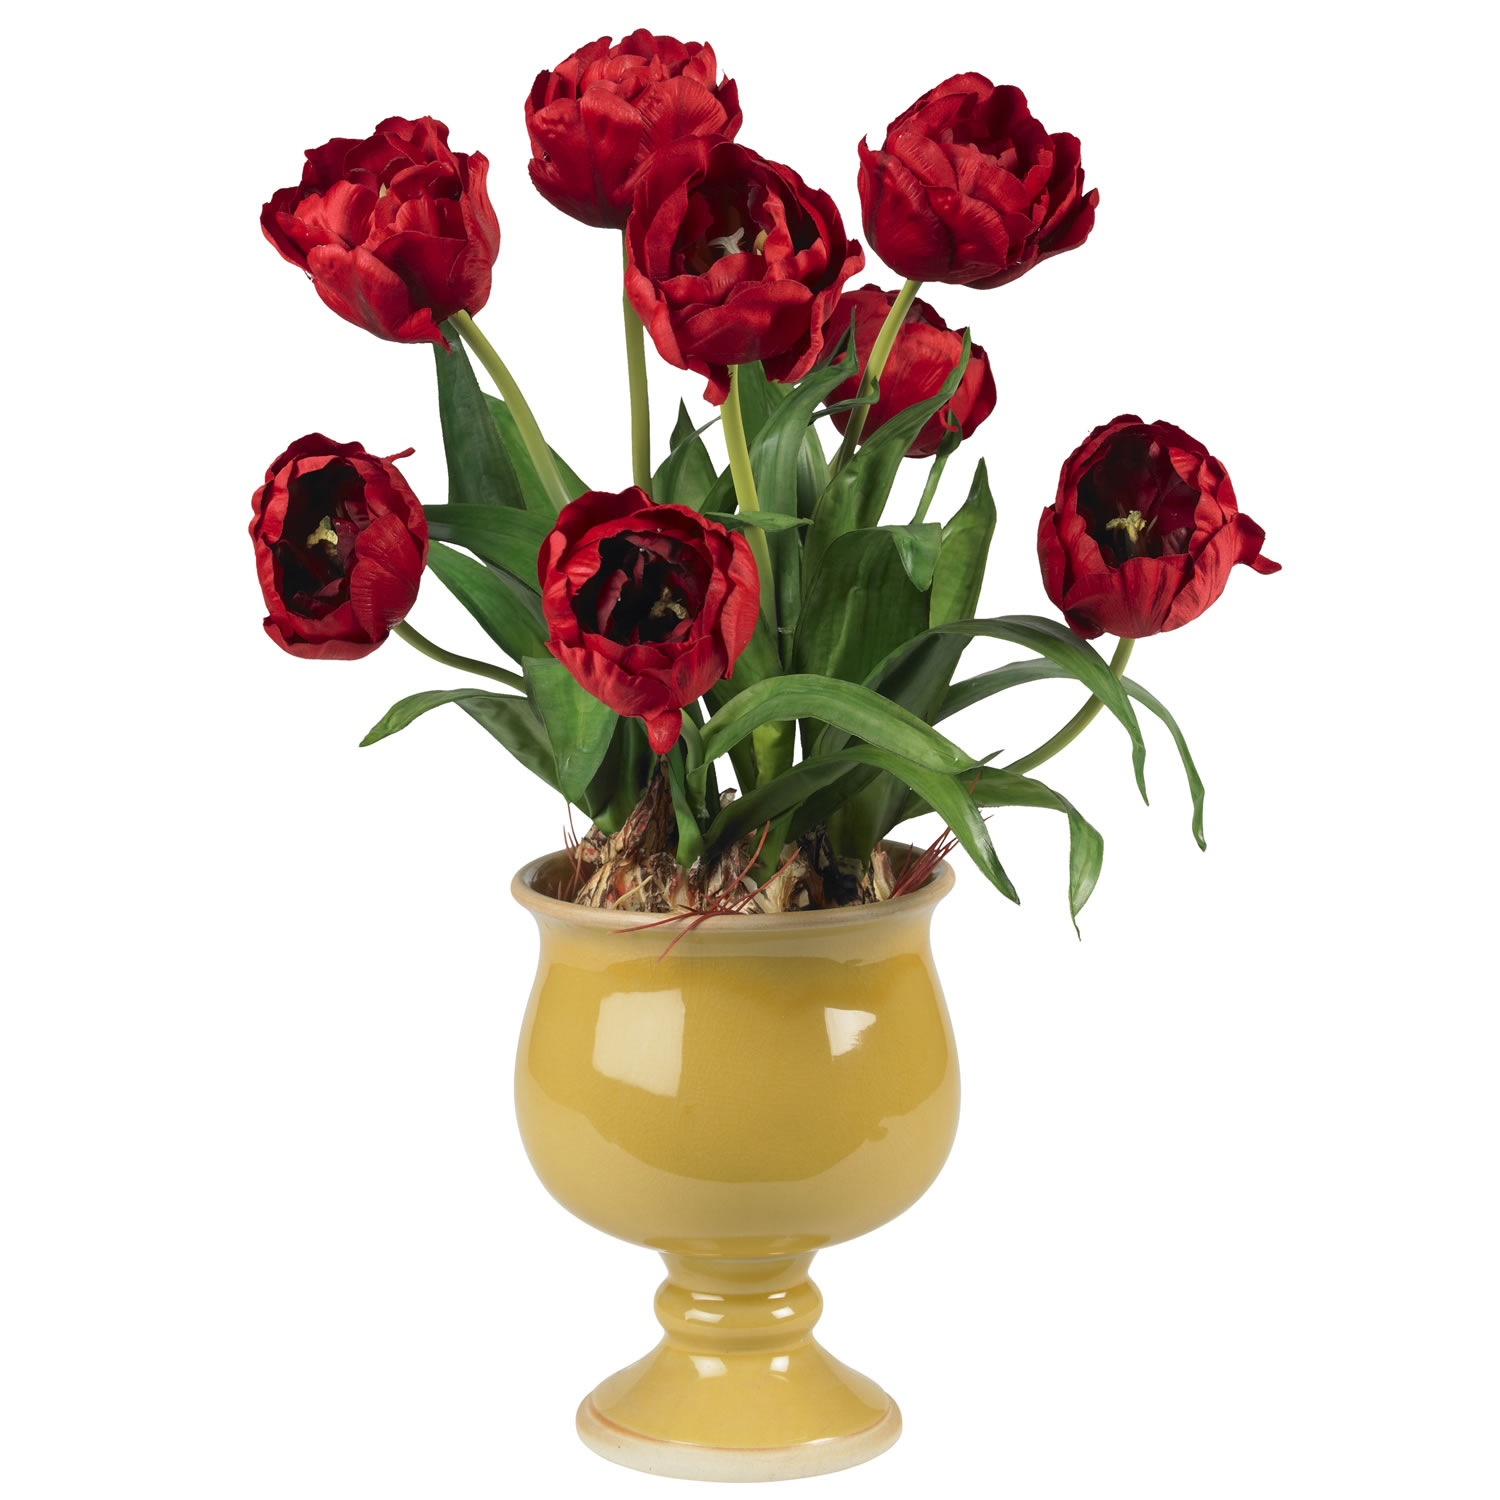 wayfair tulips with pillows willa vase reviews pdx in arrangement arranged interiors decor arlo